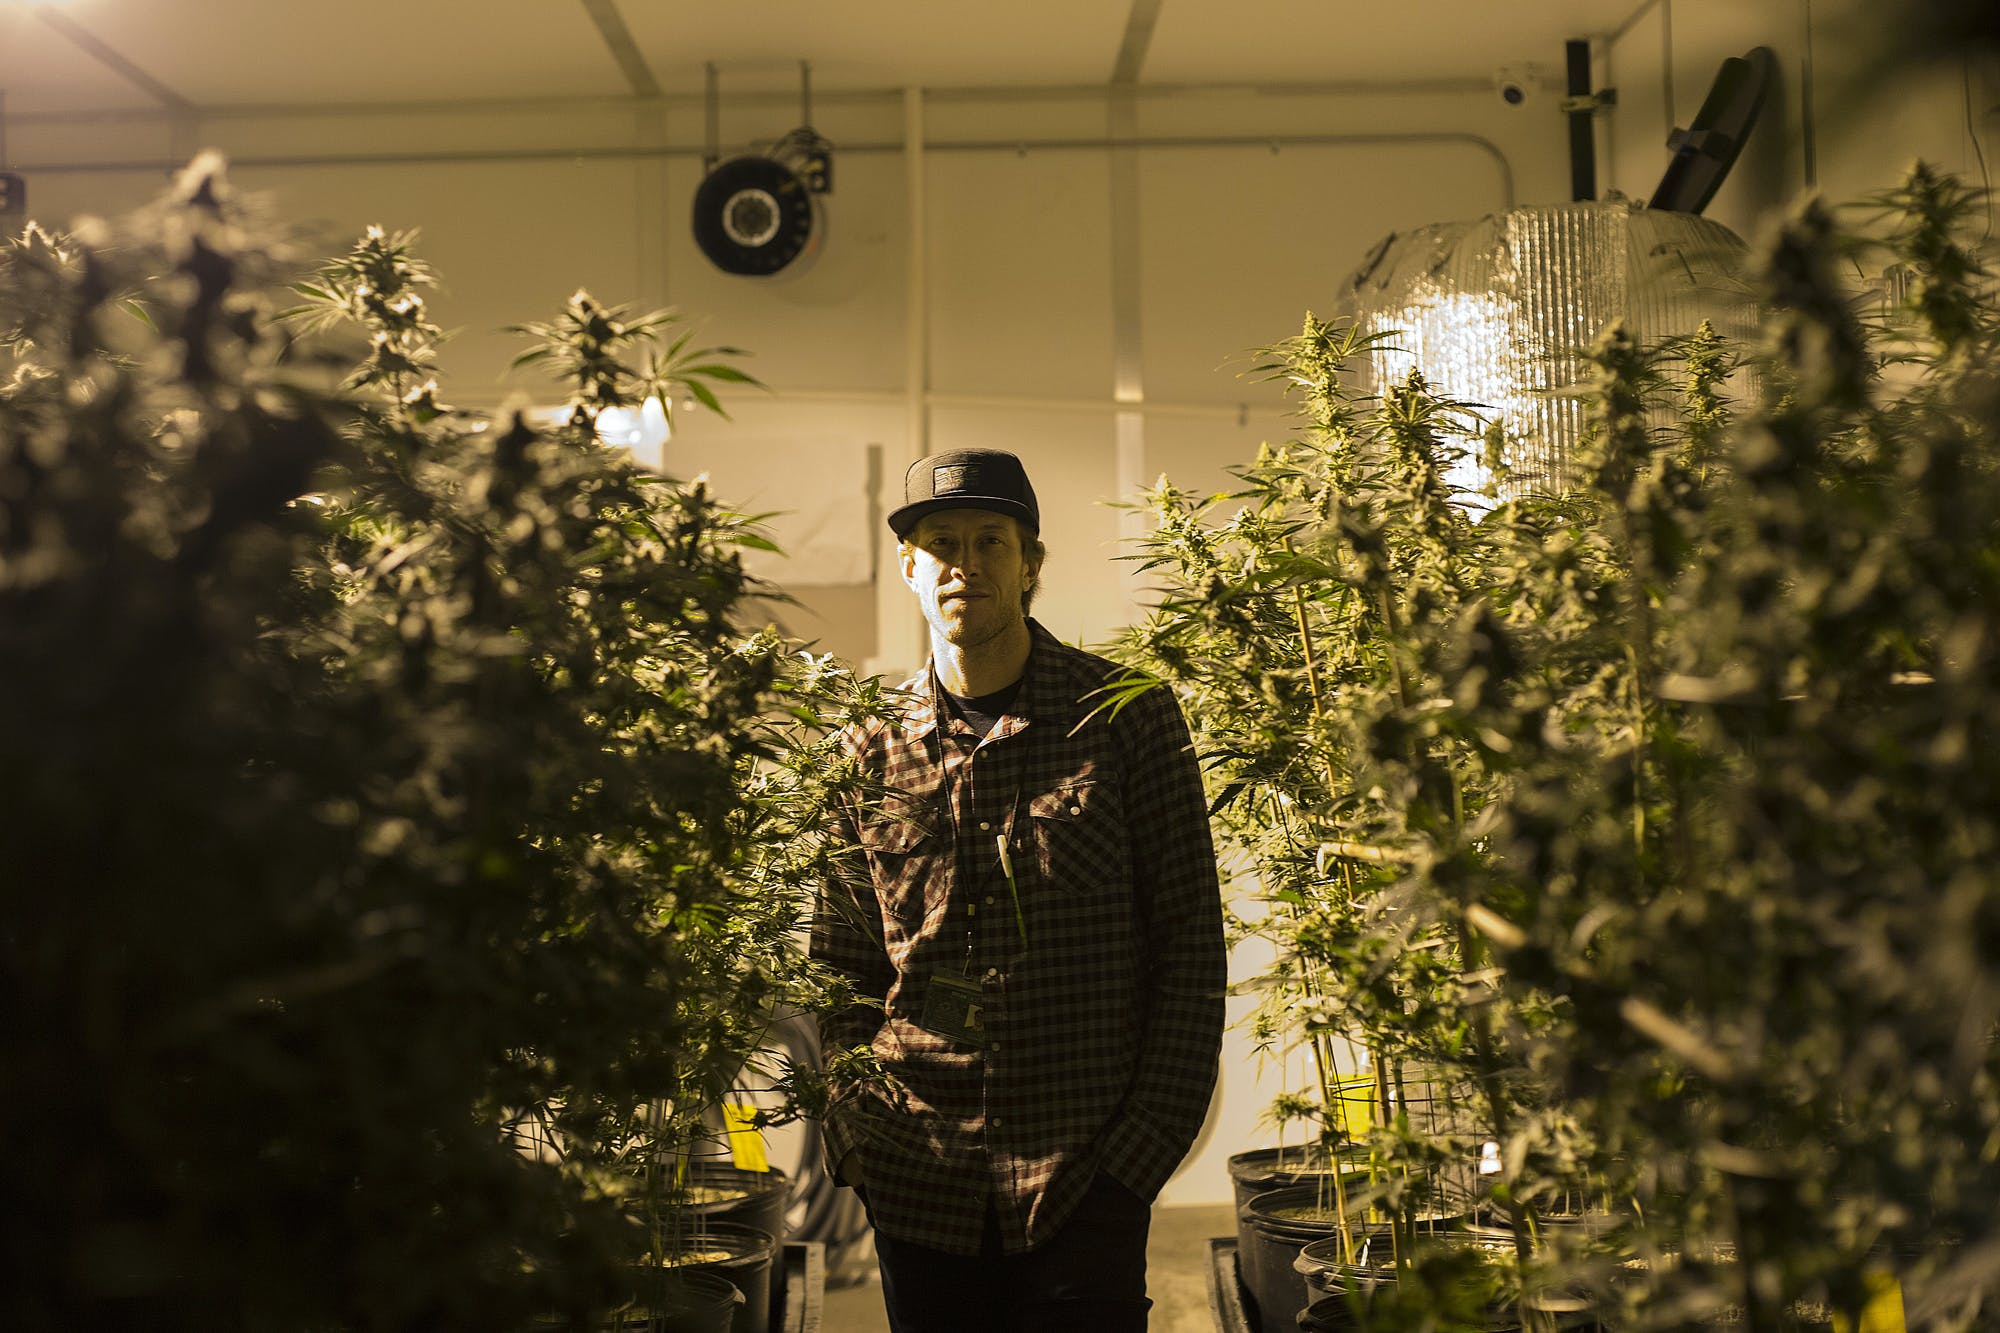 Washingtonstatecannabis Medical marijuana patients are getting evicted in legal states